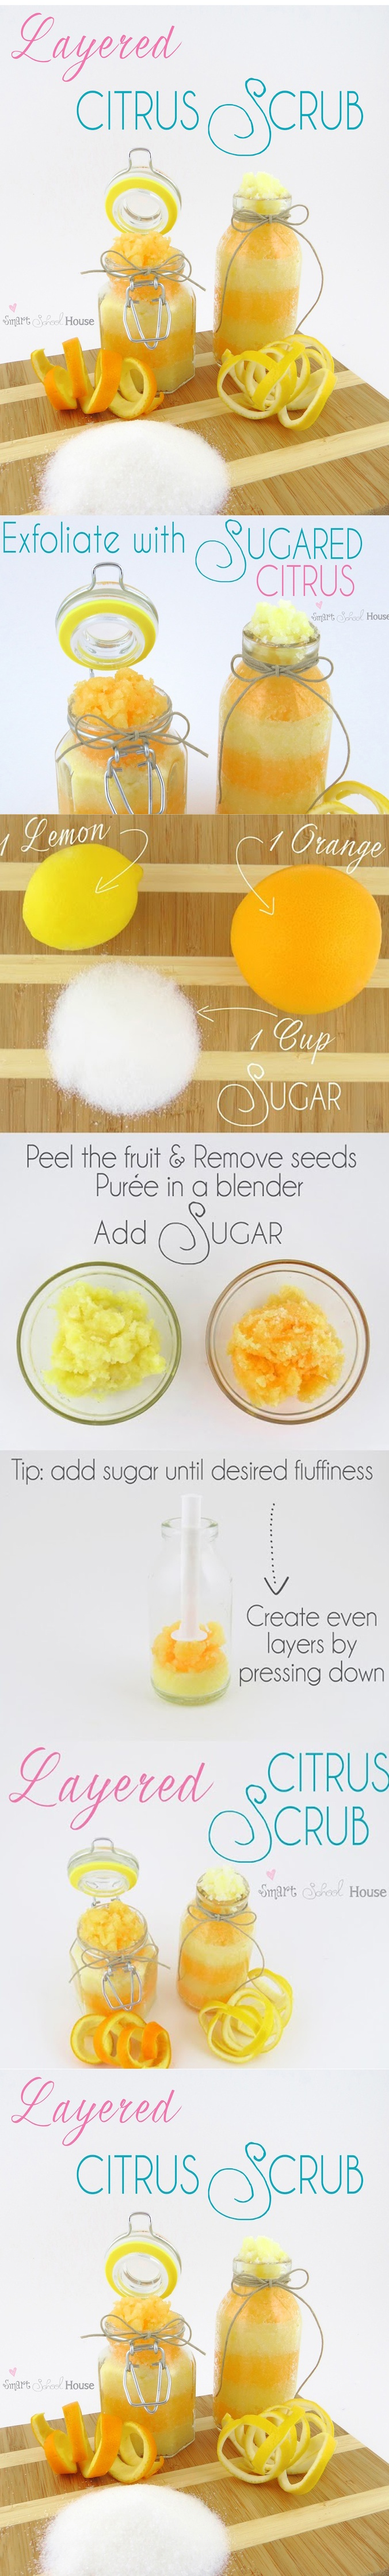 For smooth skin